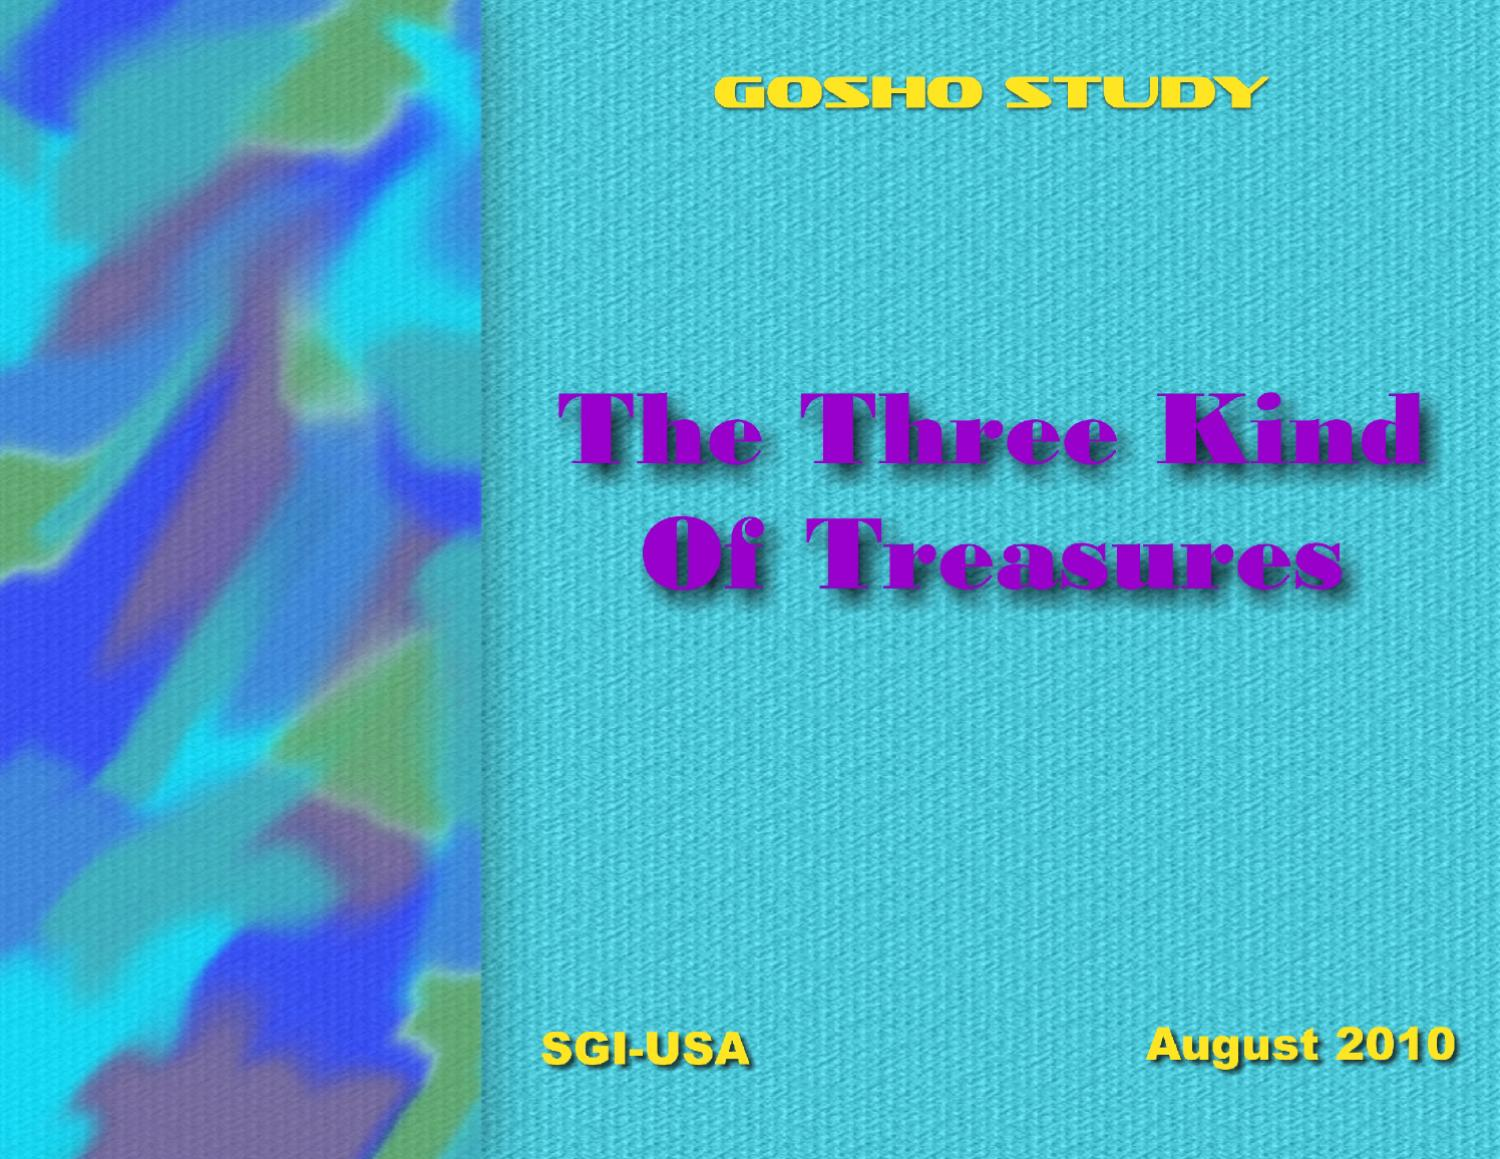 values of the ra ana essay by phillip hedayatnia issuu the three kinds of treasures